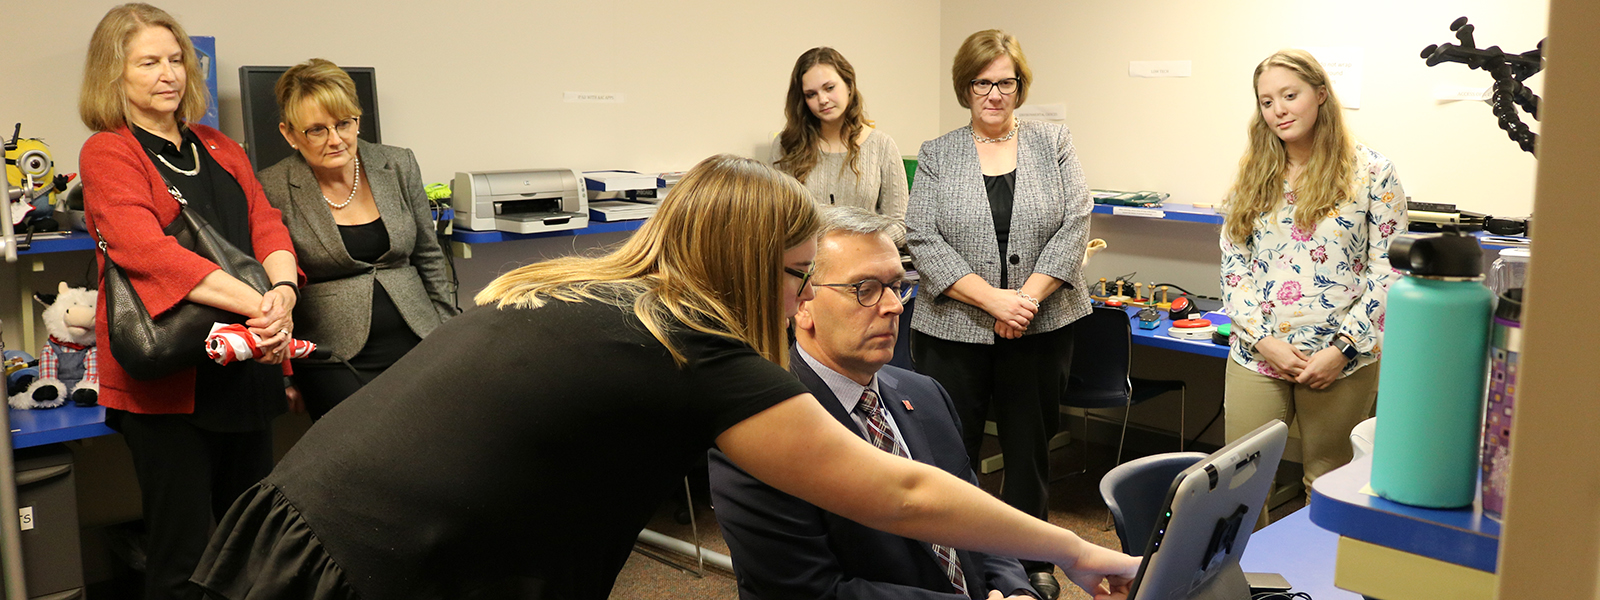 Chancellor Ronnie Green receives instructions from Abby Crimmins, a speech-language pathology graduate student, on how to use the eye gaze system in the AAC Lab as several people look on.